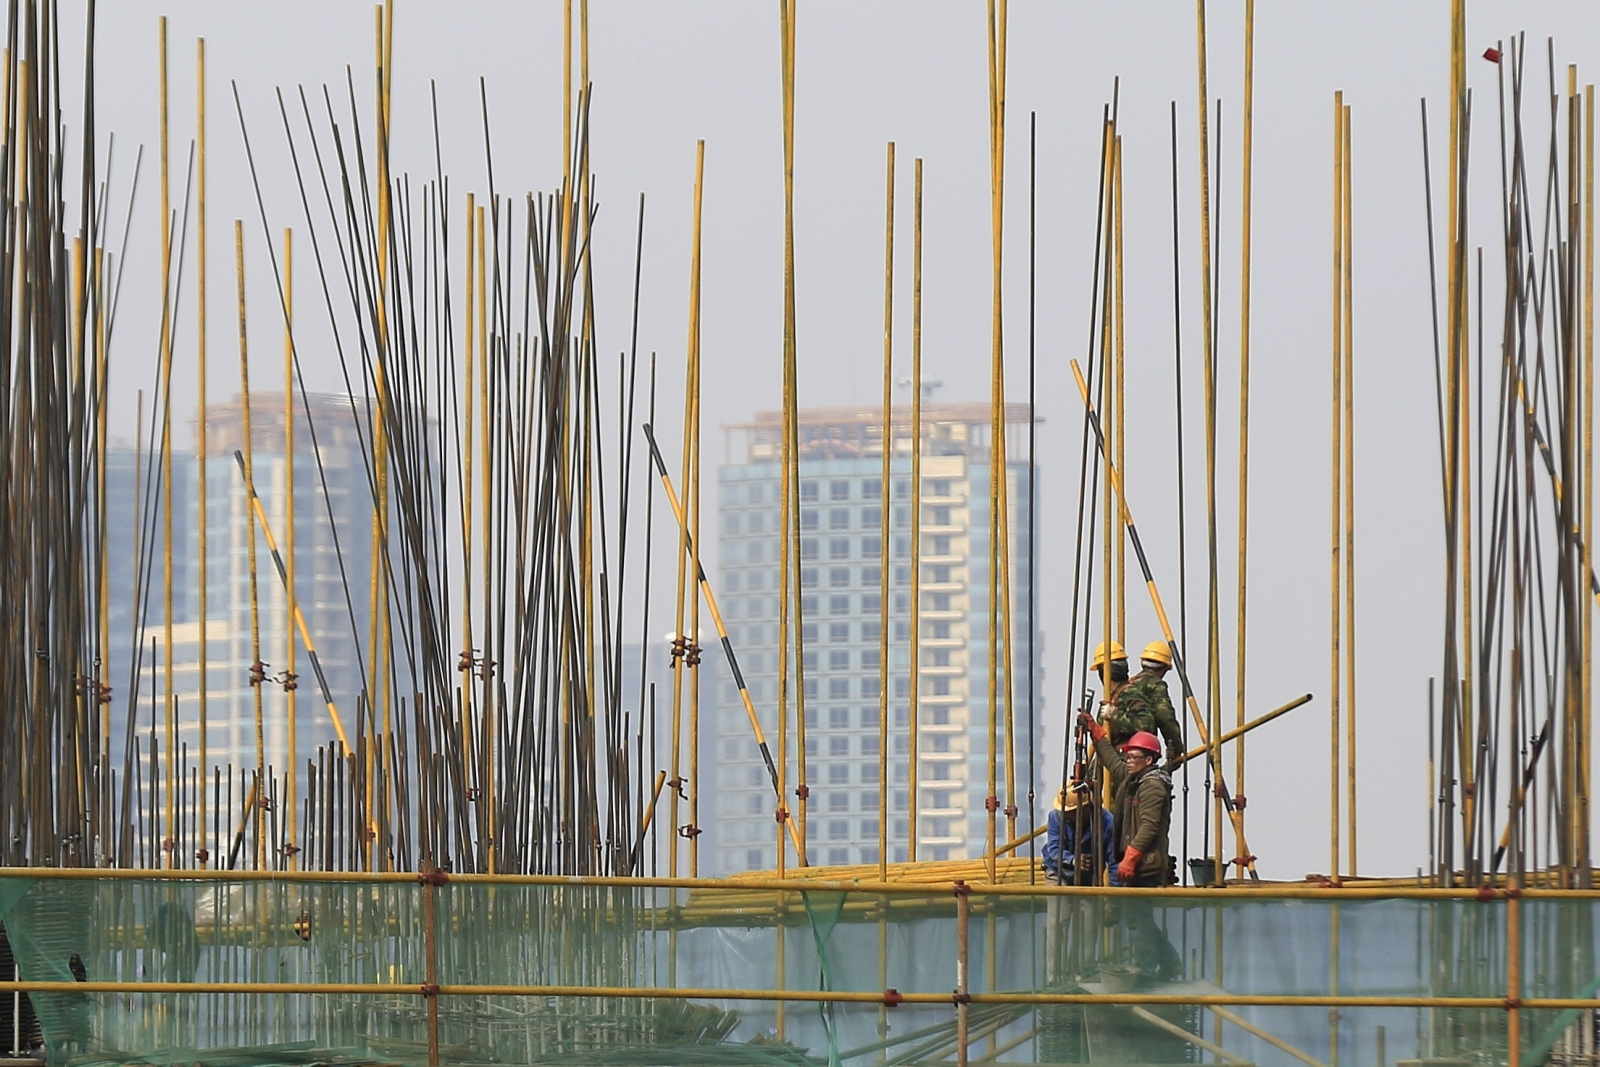 China's economy expands at 7.4% in 2014, slowest pace in 24 years